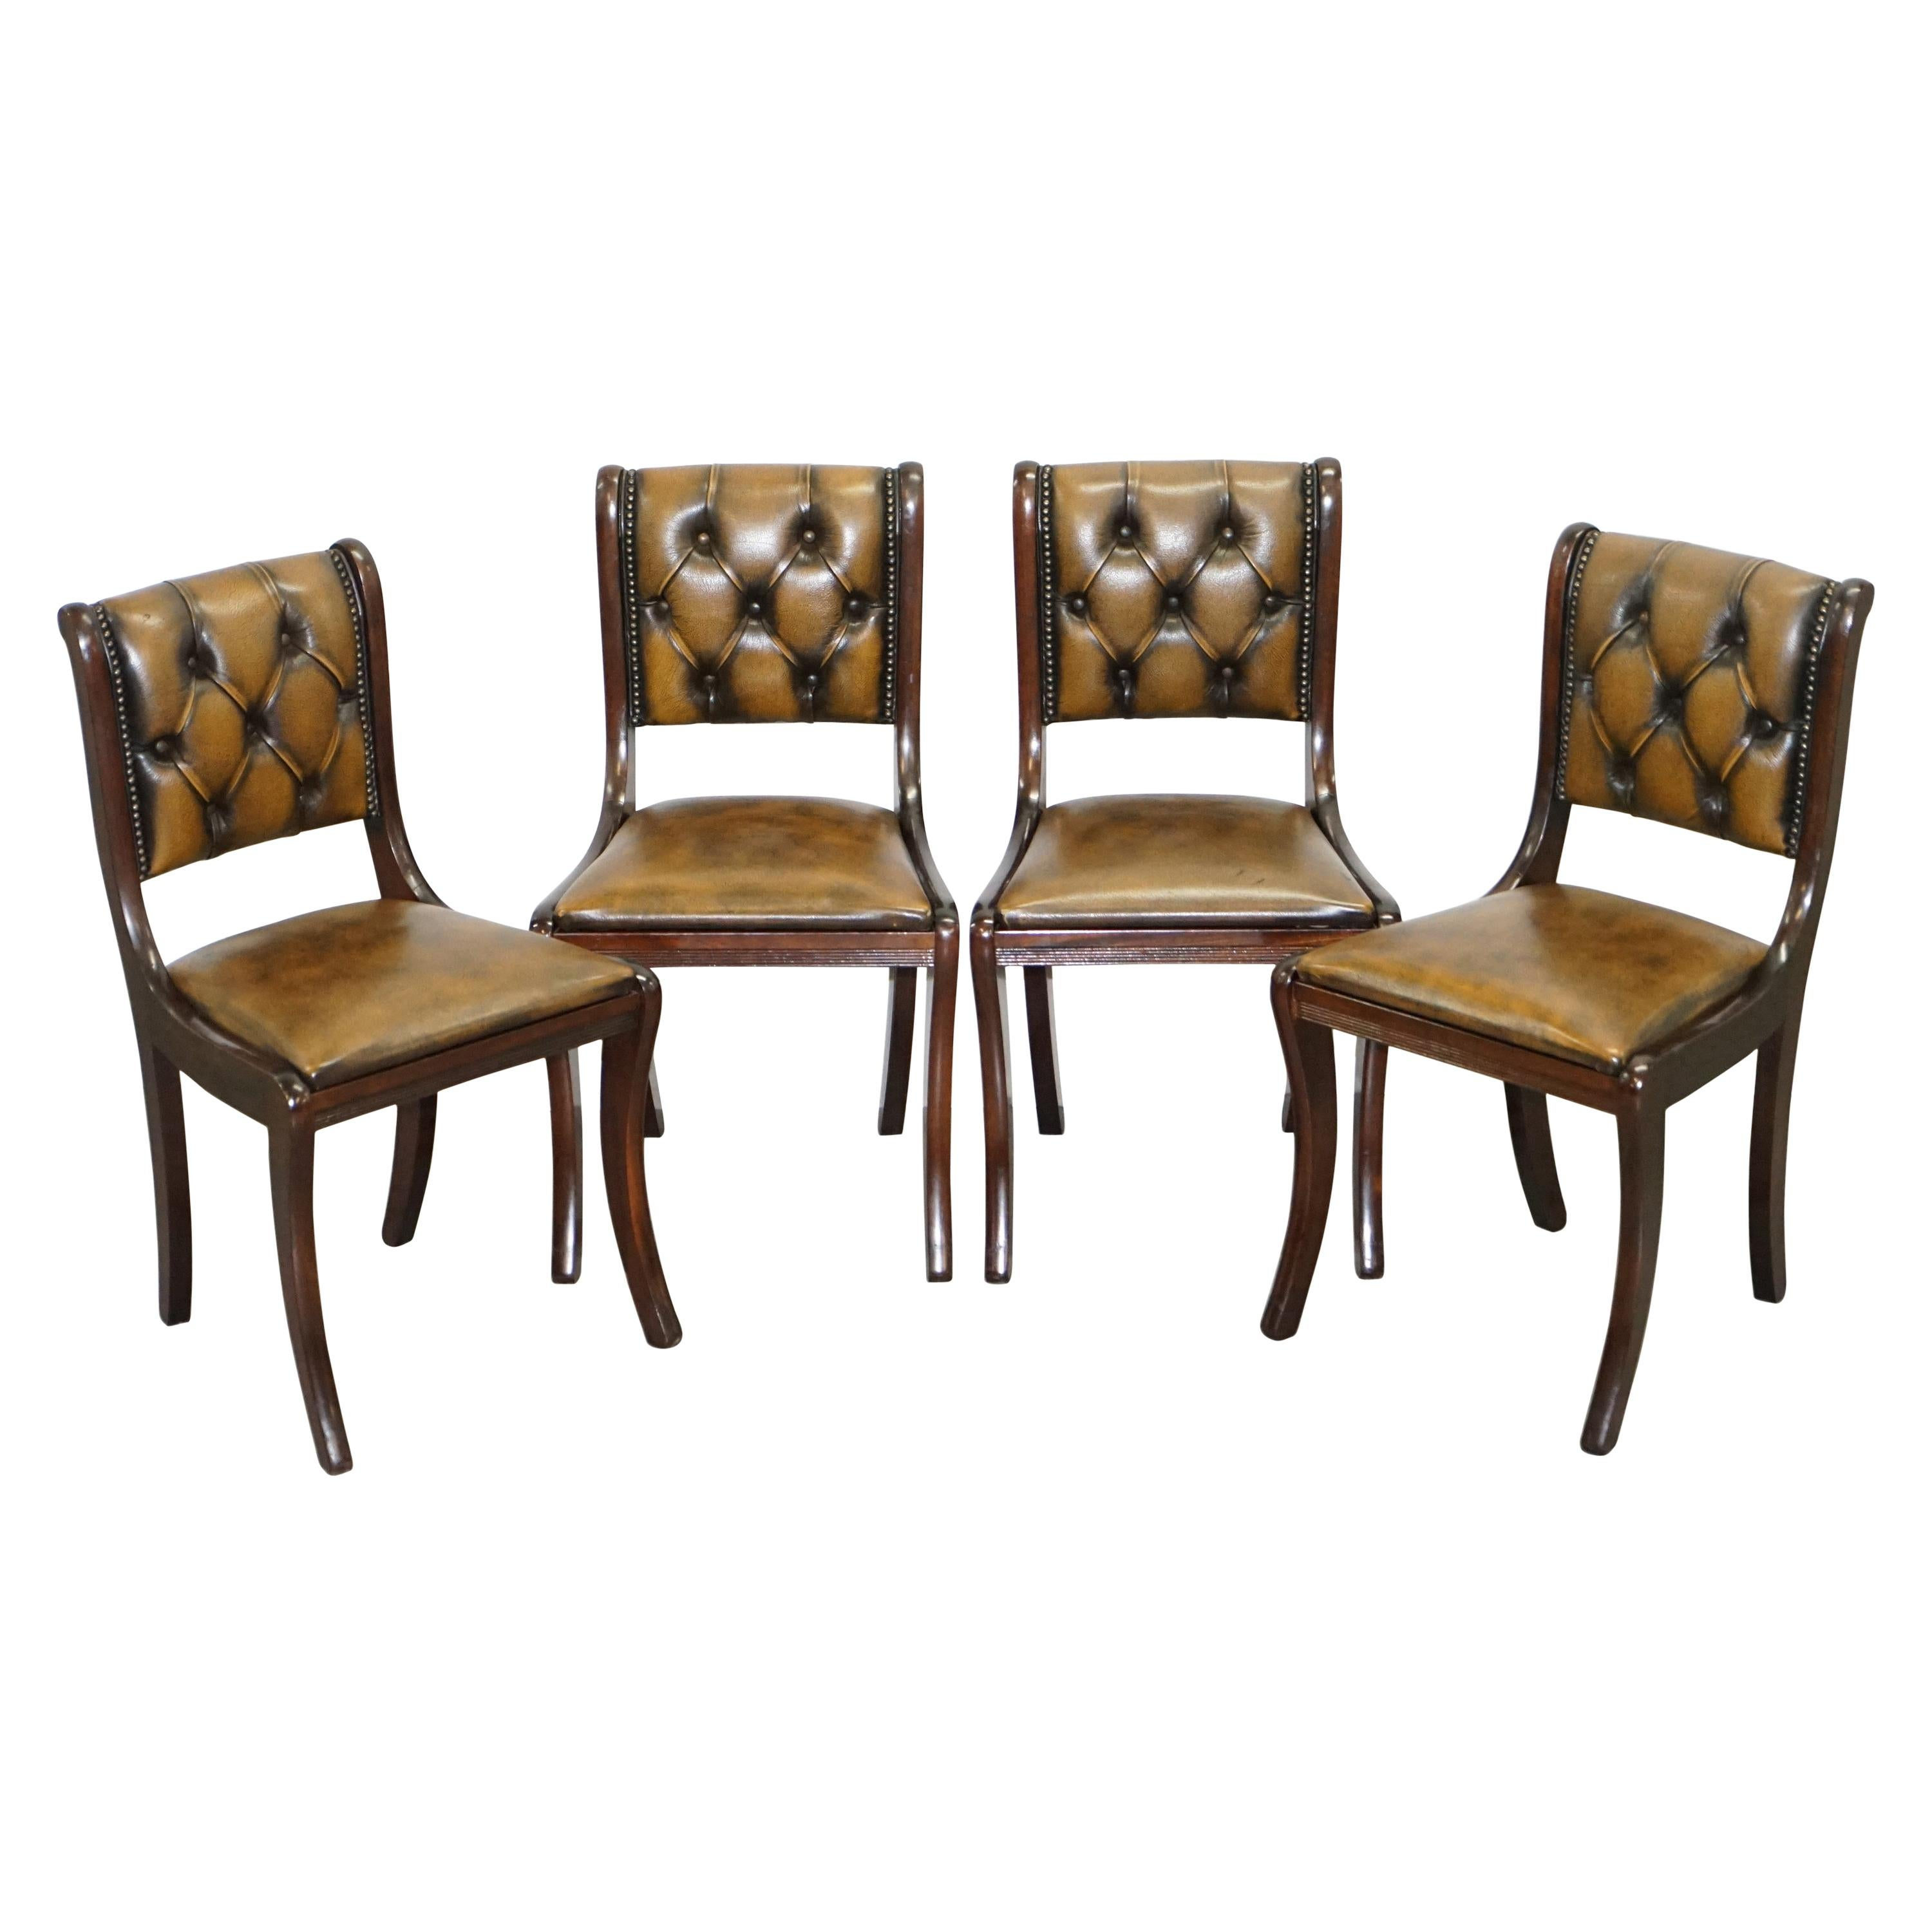 Suite of Four Aged Pretol Brown Leather & Hardwood Chesterfield Dining Chairs 4